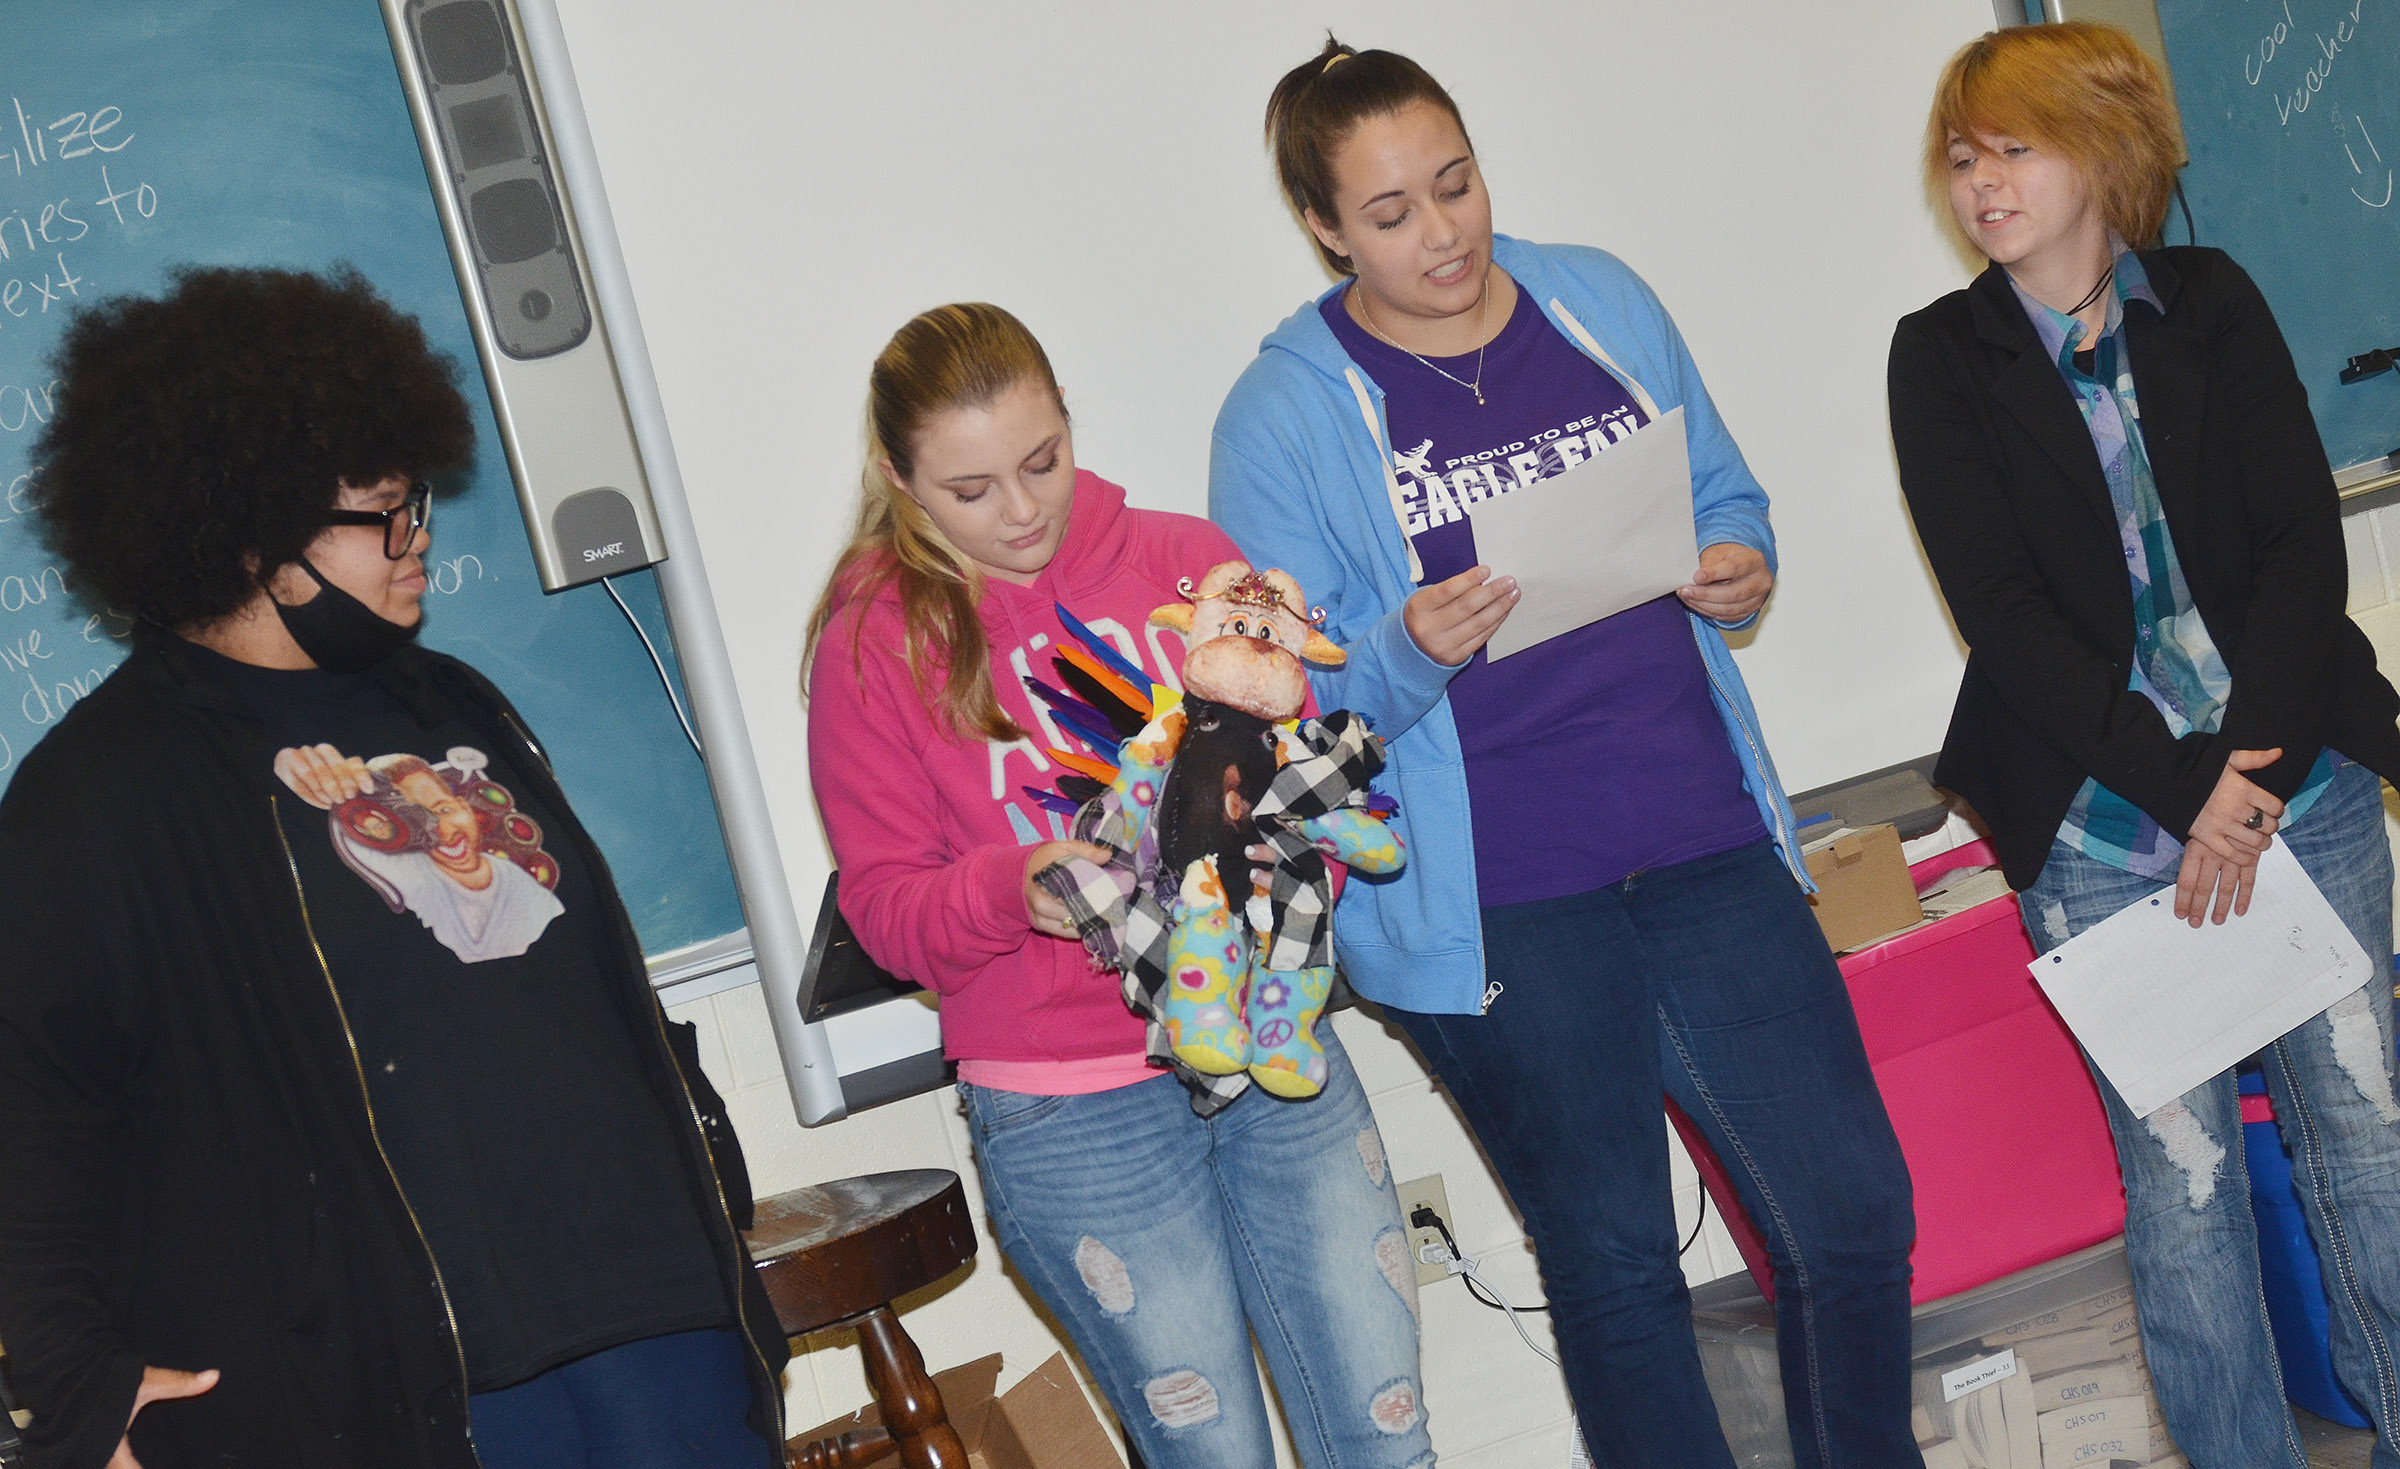 CHS juniors, from left, Jaylah Tucker, Hayley Stapleton, Elizabeth Sullivan and Christina Phipps talk about their monster.